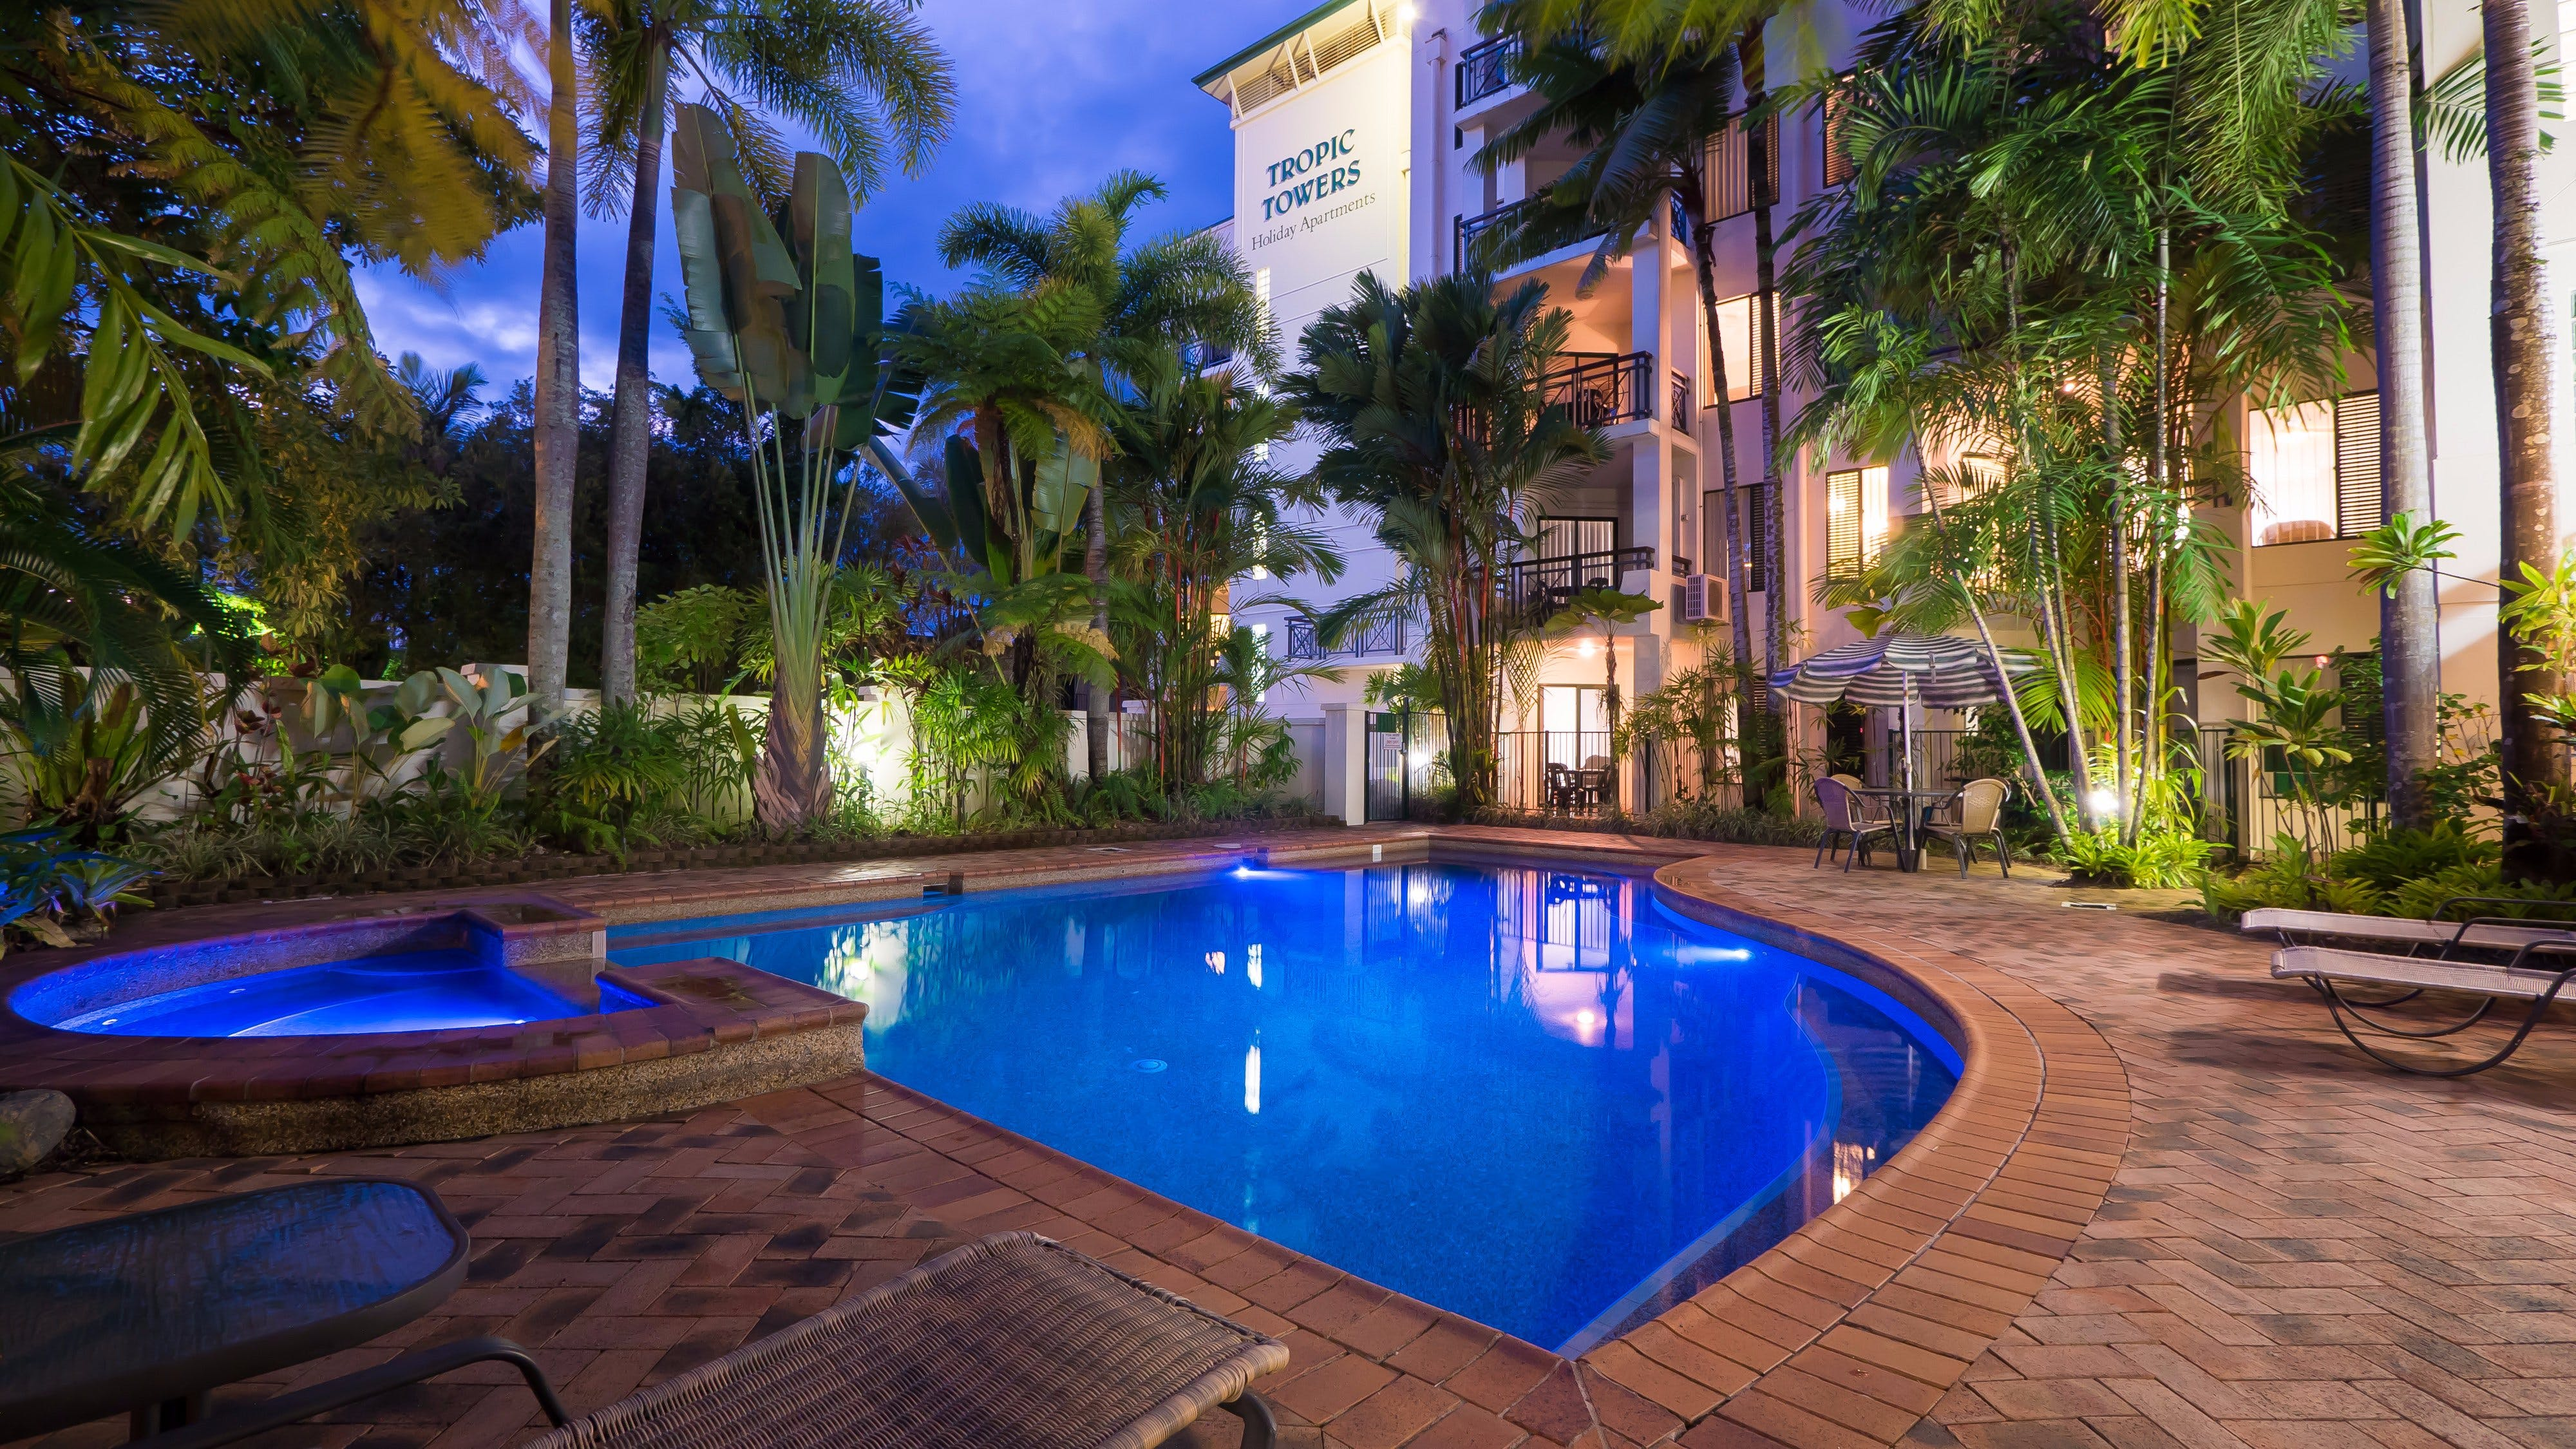 Tropic Towers Apartments - Newcastle Accommodation